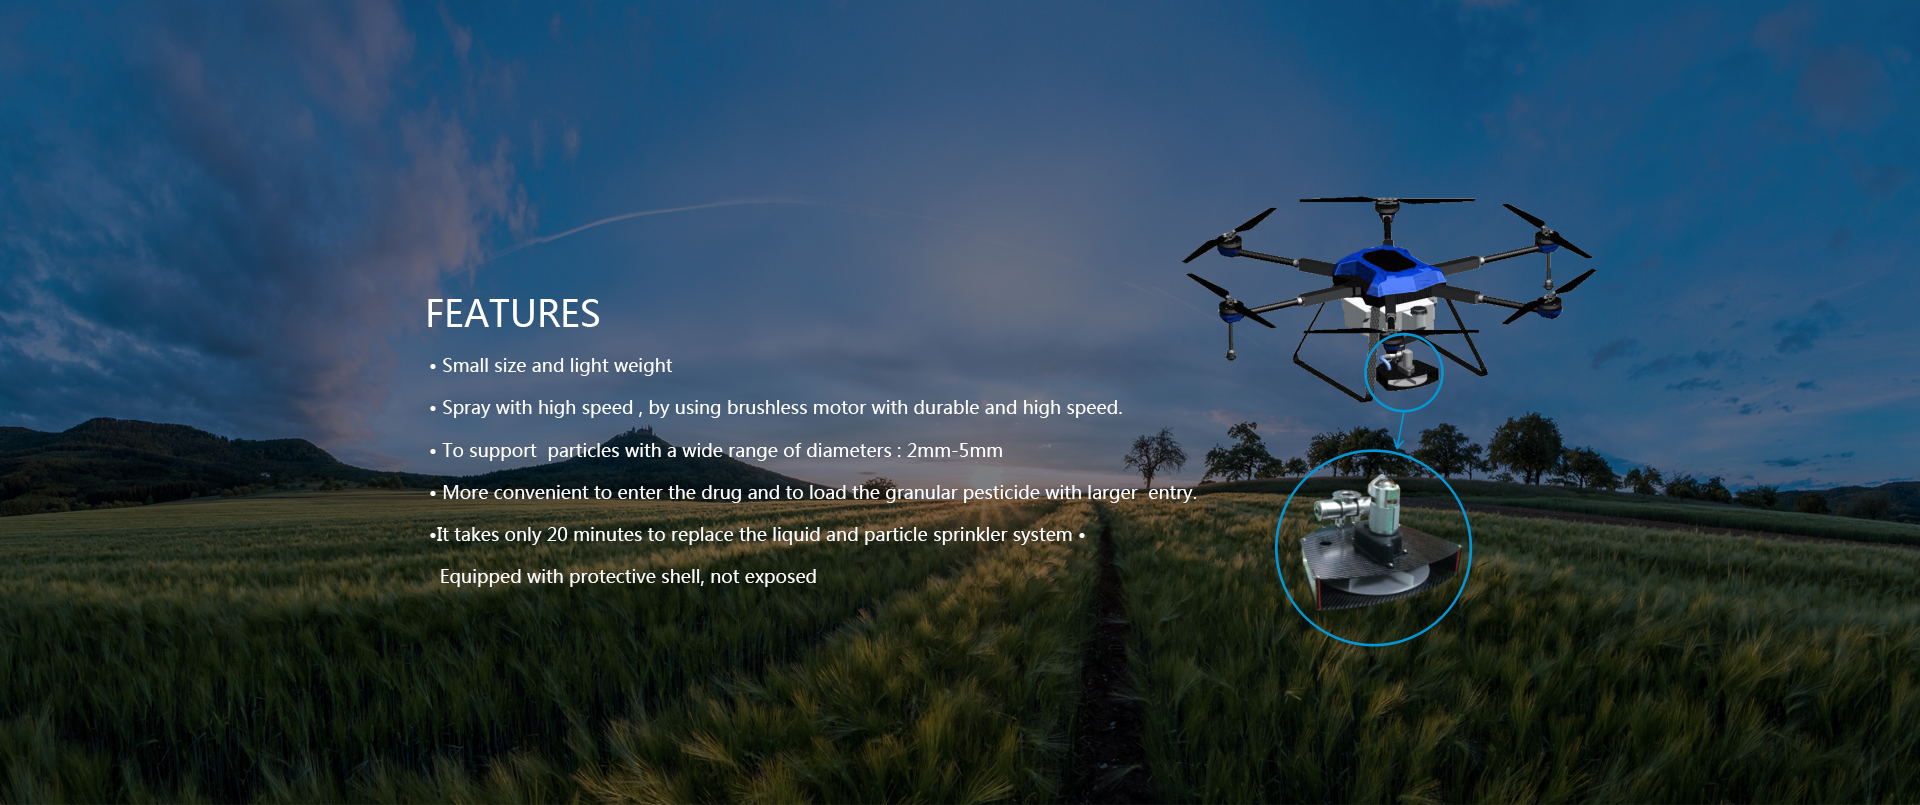 JTT A15 agricultural drone UAV crop spraying drone